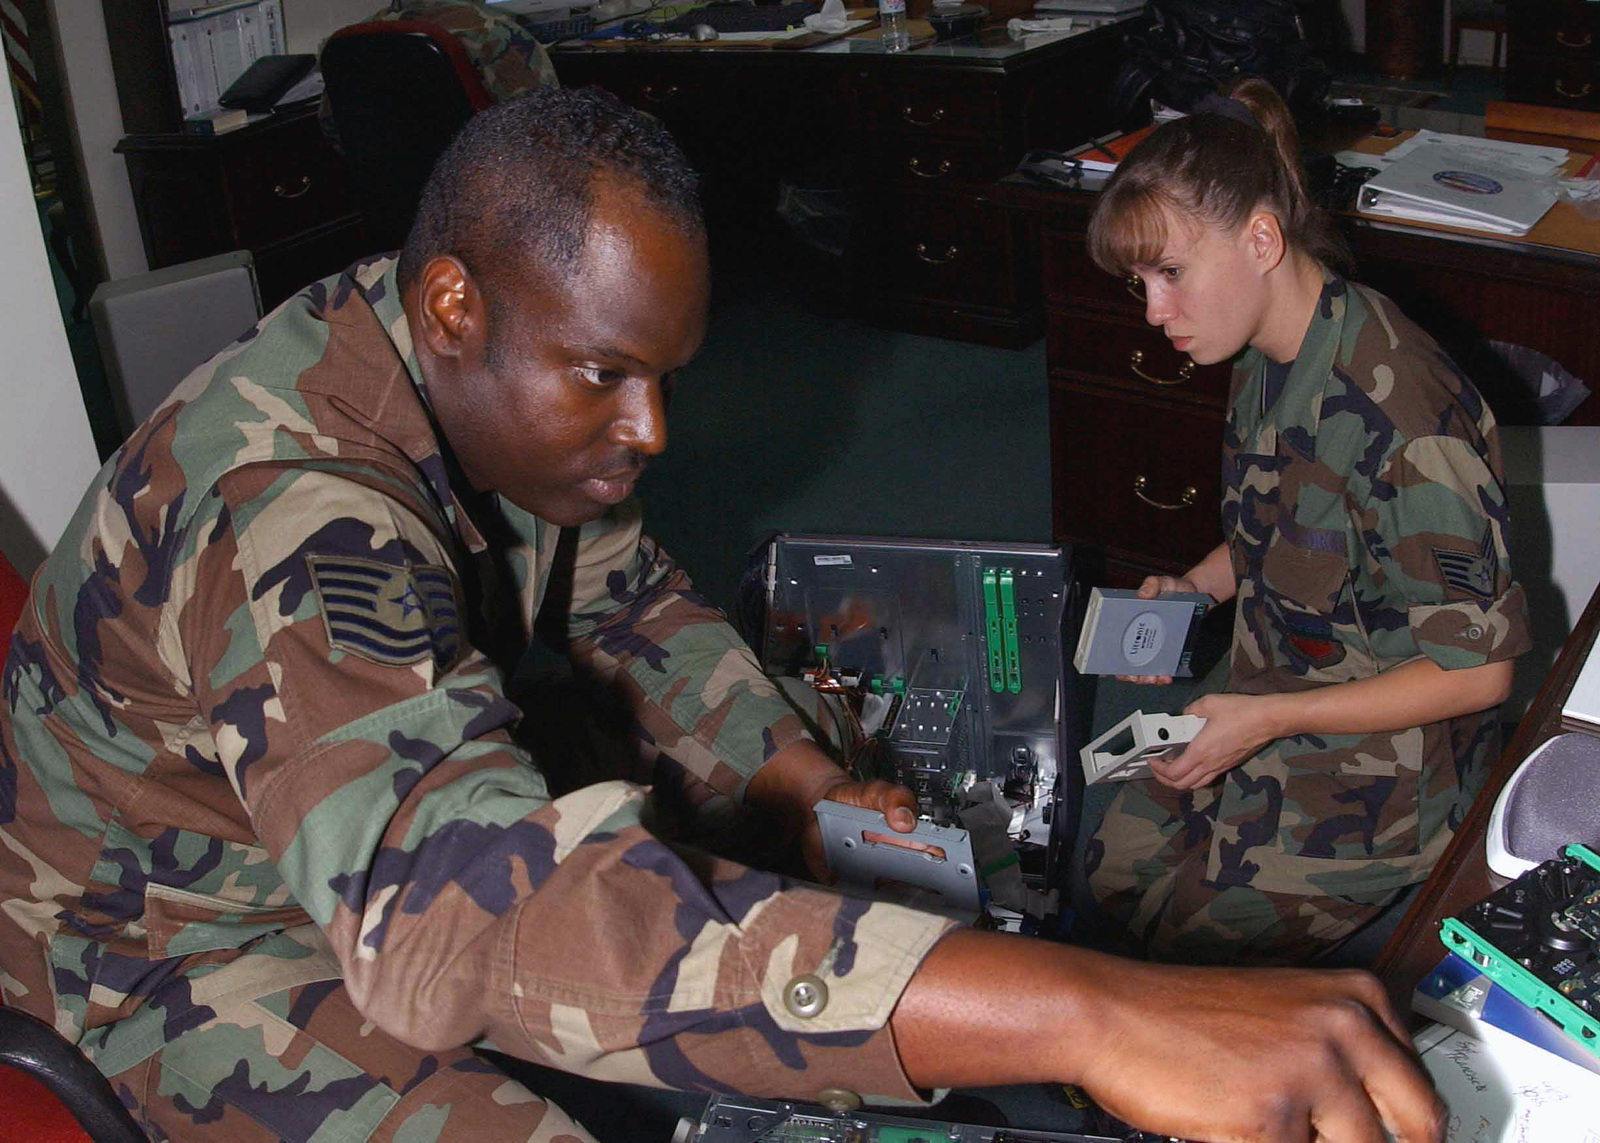 US Air Force (USAF) MASTER Sergeant (MSGT) Greg Van Buren (left) and USAF STAFF Sergeant (SSGT) Cathe Rynkowski, combine their expertise, while installing new computers for the Combined Task Force (CTF) Headquarters, at Incirlik Air Base (AB), Turkey, while deployed in support of Operation NORTHERN WATCH